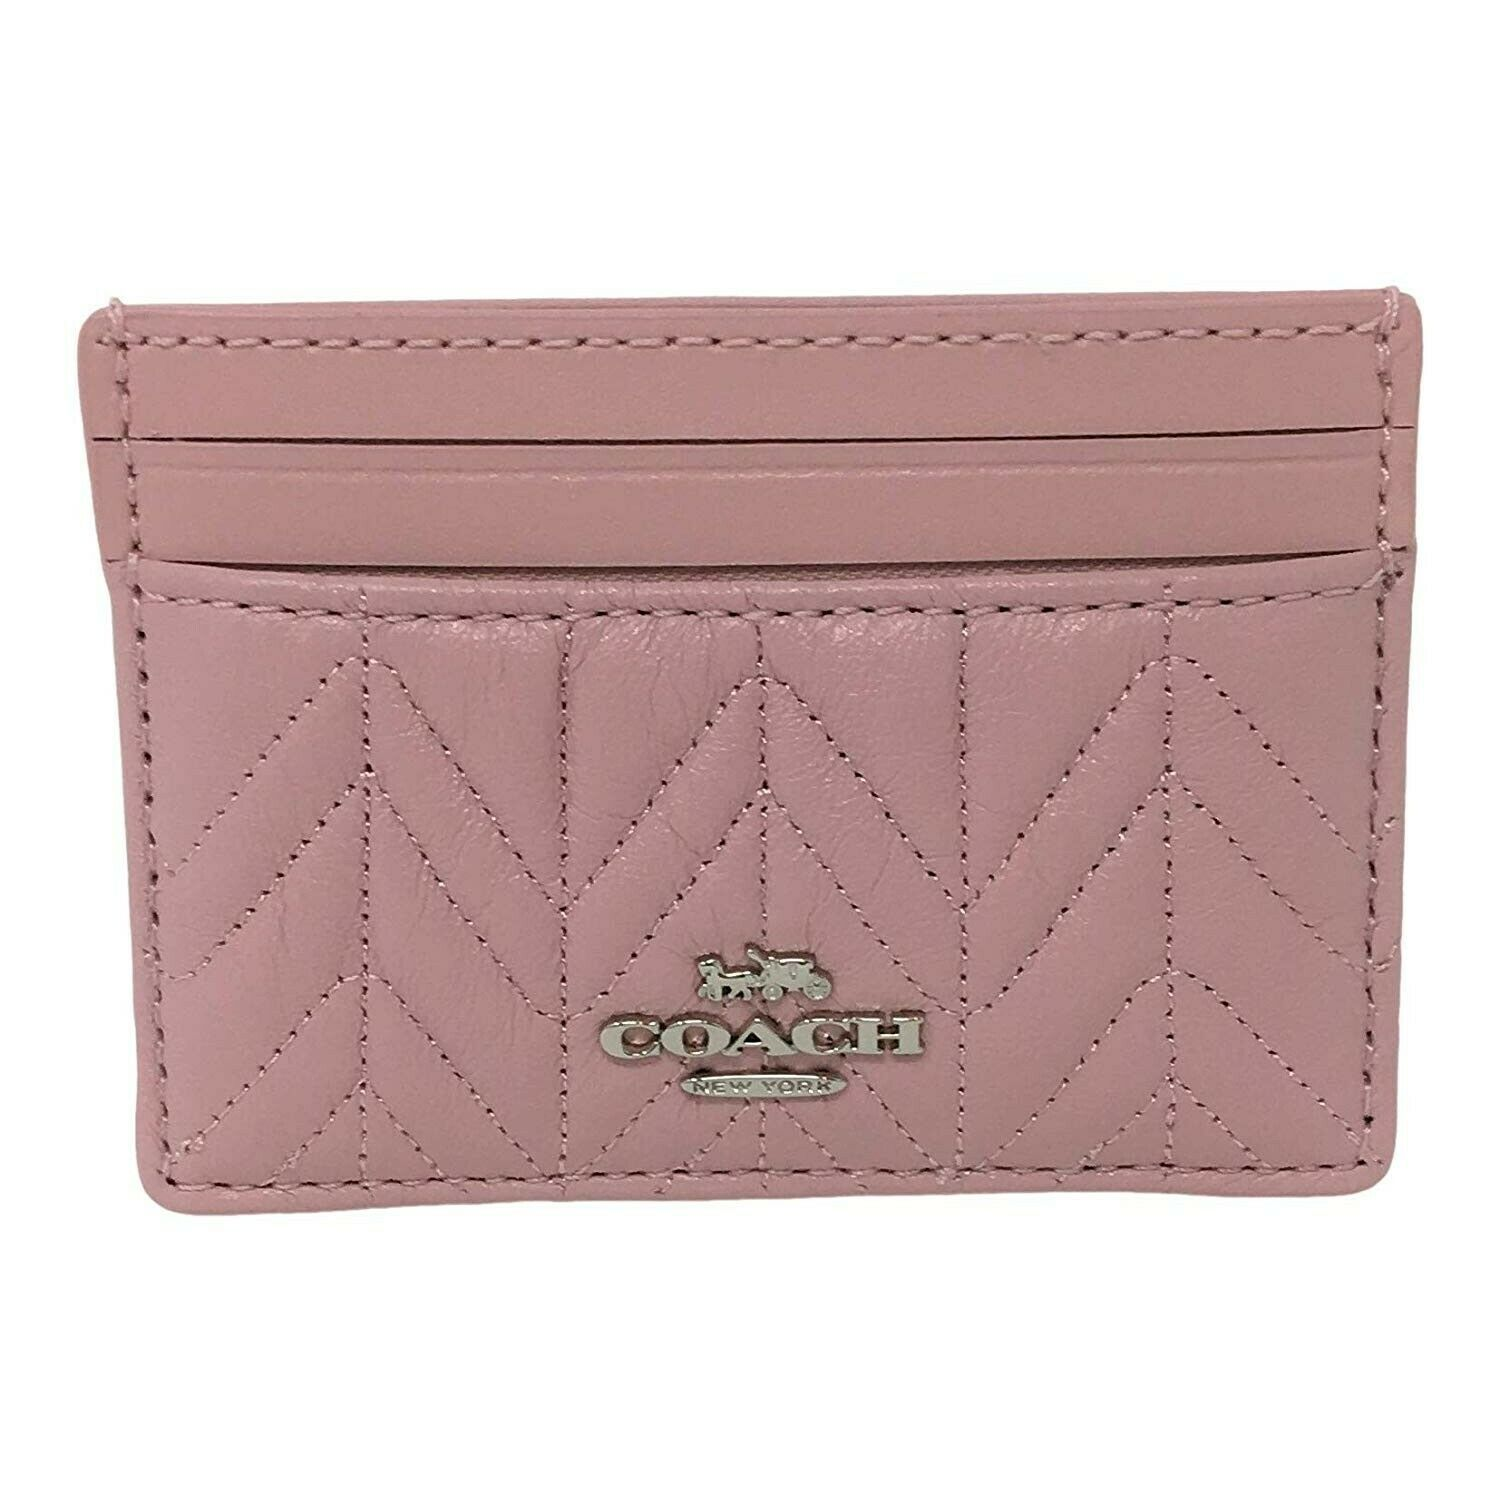 723a2e38 Coach Wallet: 50 customer reviews and 1462 listings